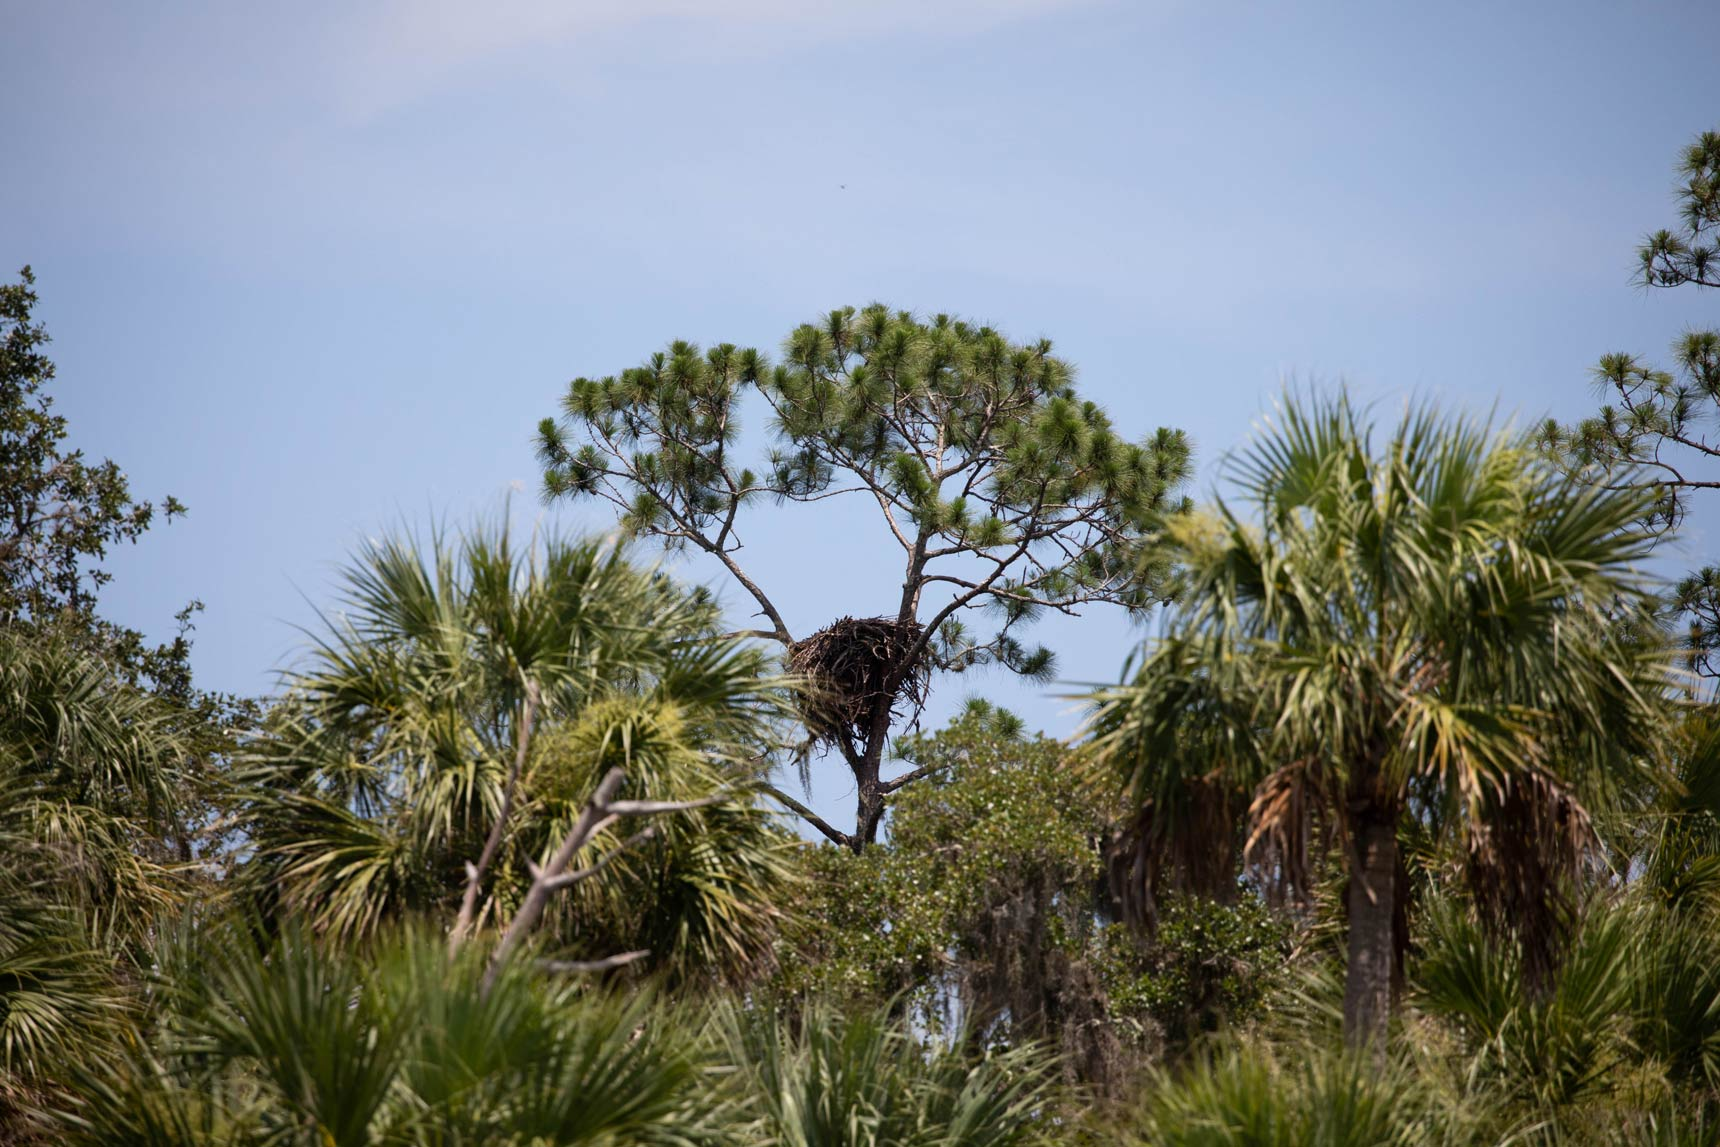 Eagle nest in a tree